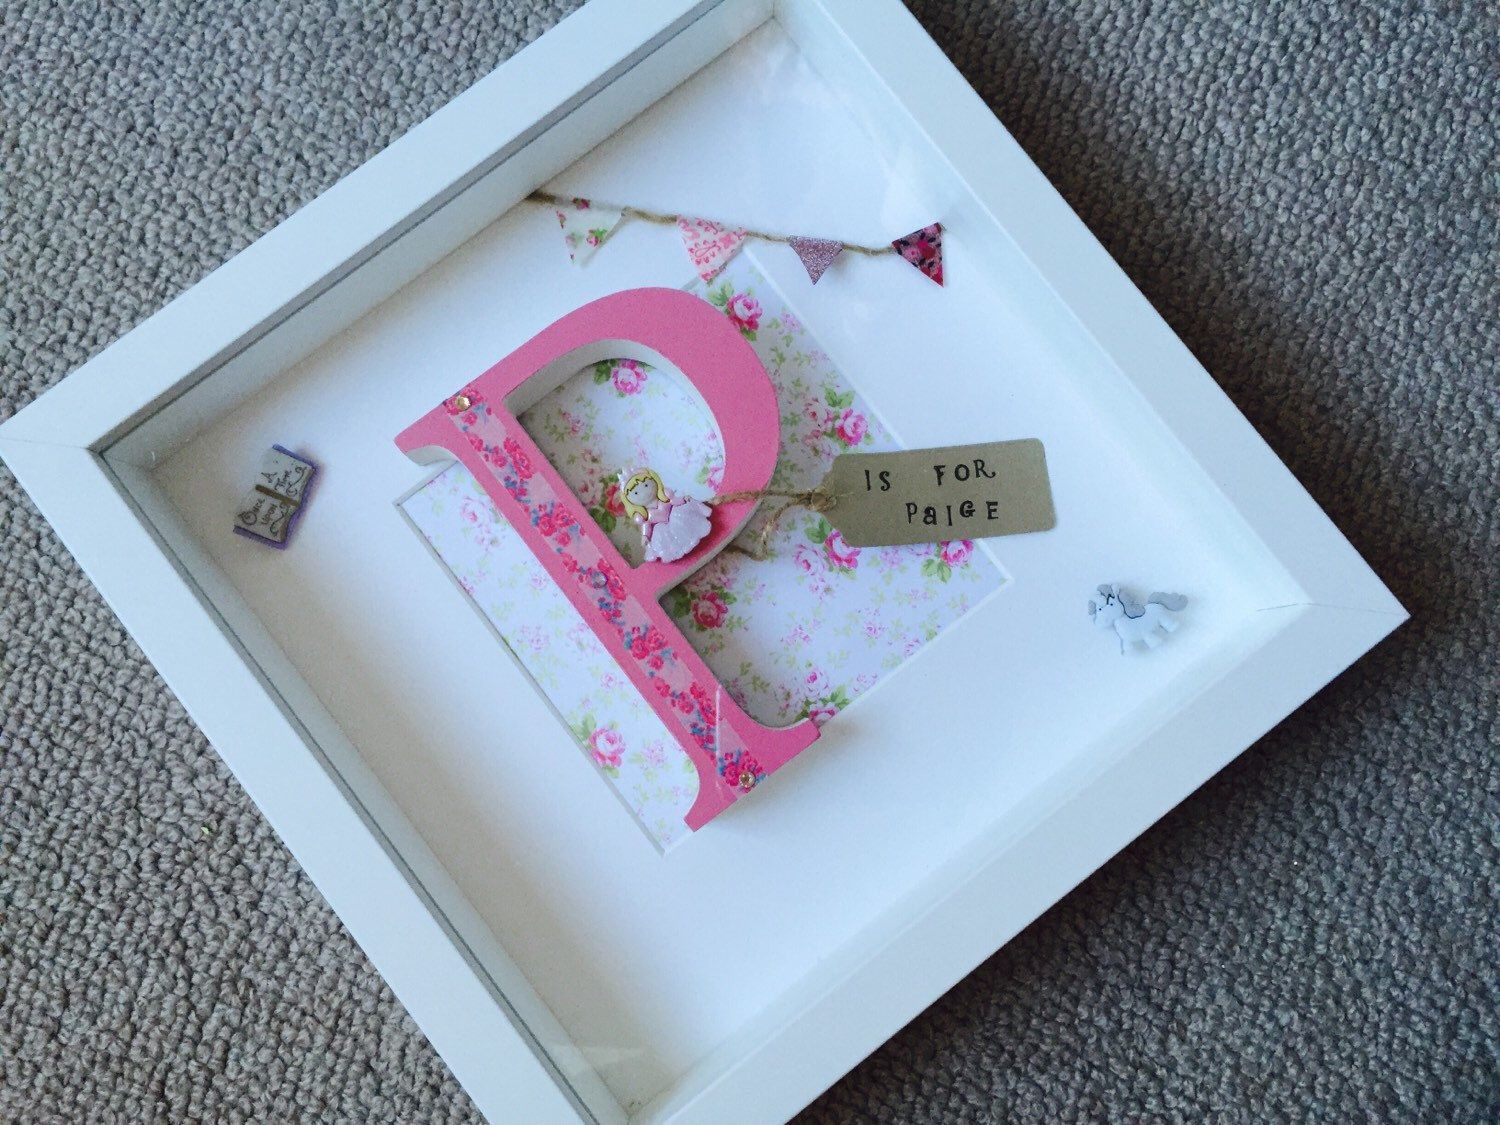 Wooden letter box frame baby girl gift by munchkinmaker22 on etsy wooden letter box frame baby girl gift by munchkinmaker22 on etsy https negle Choice Image